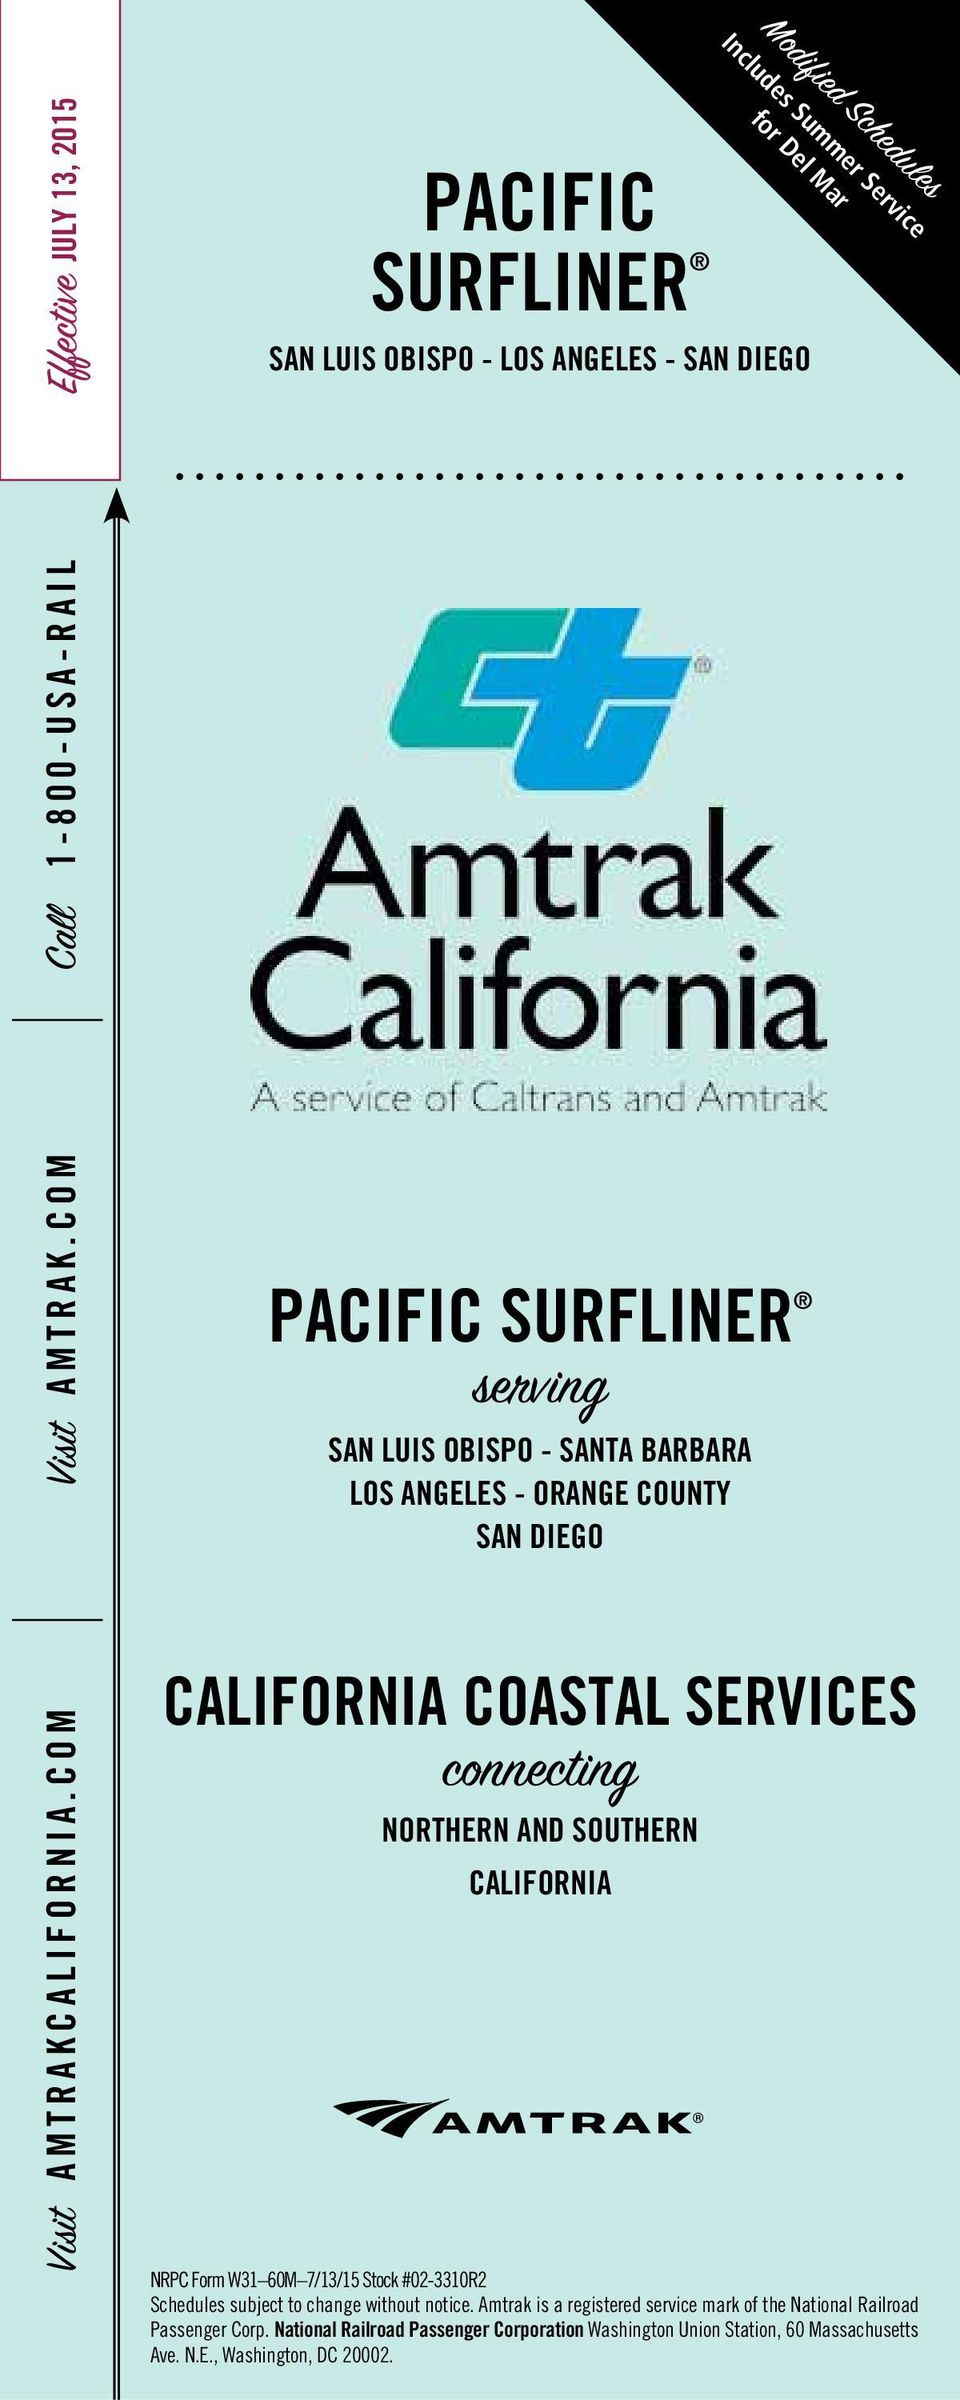 COM CALIFORNIA COASTAL SERVICES connecting NORTHERN AND SOUTHERN CALIFORNIA NRPC Form W31 60M 7/13/1 Stock #02-3310R2 Schedules subject to change without